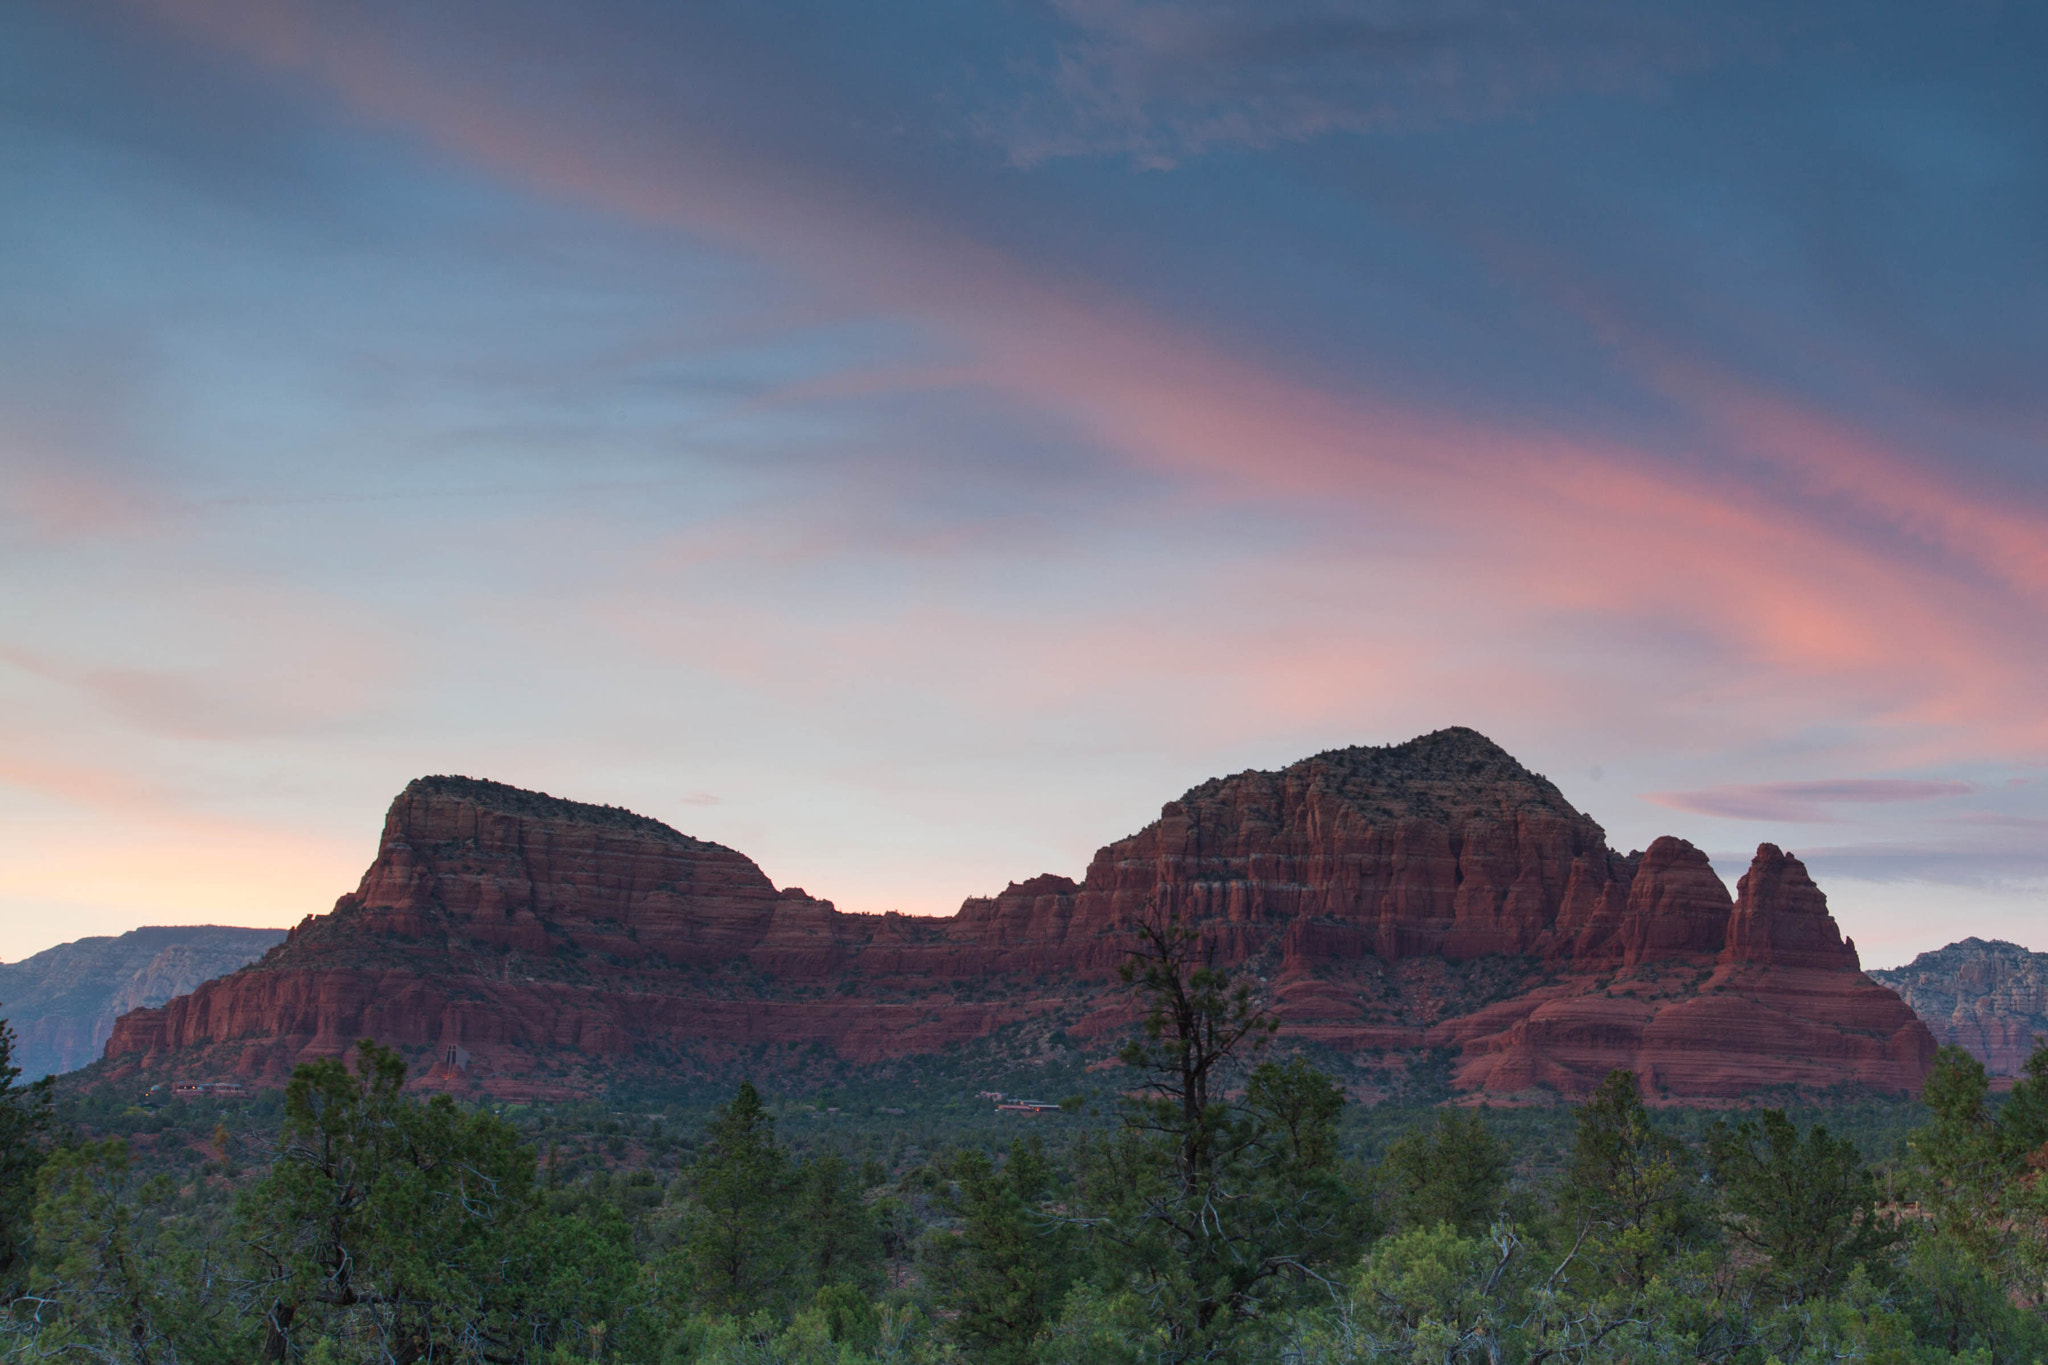 Photograph Sedona Sunset by Carl Mickleburgh on 500px